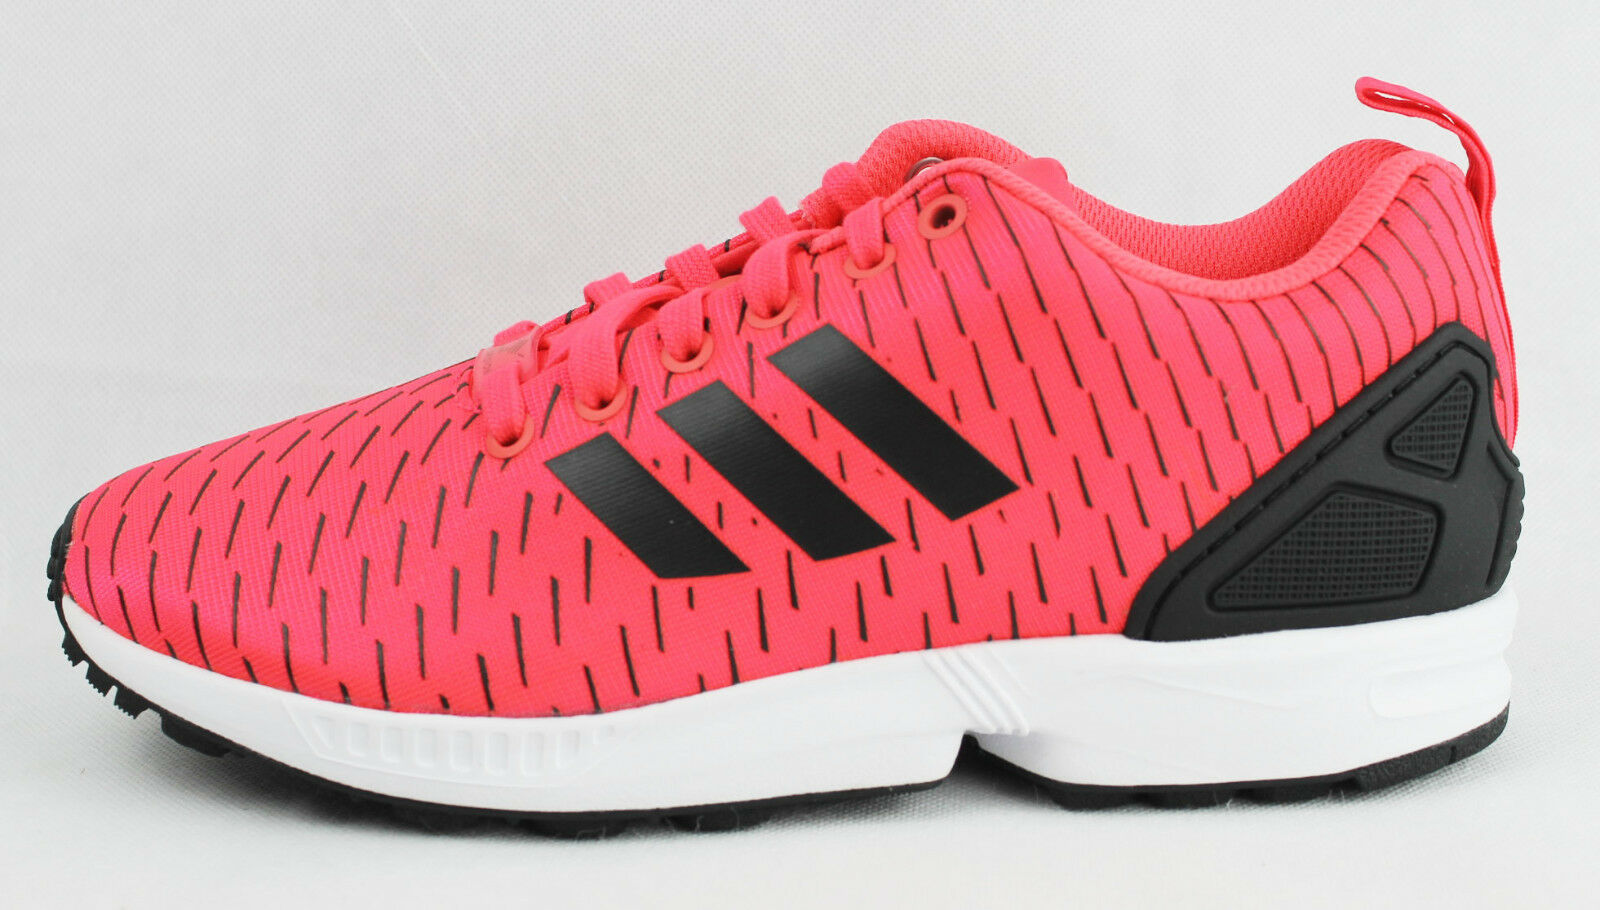 Adidas ZX ZX Adidas Flux Chaussure (s75528), taille 40 bfe311